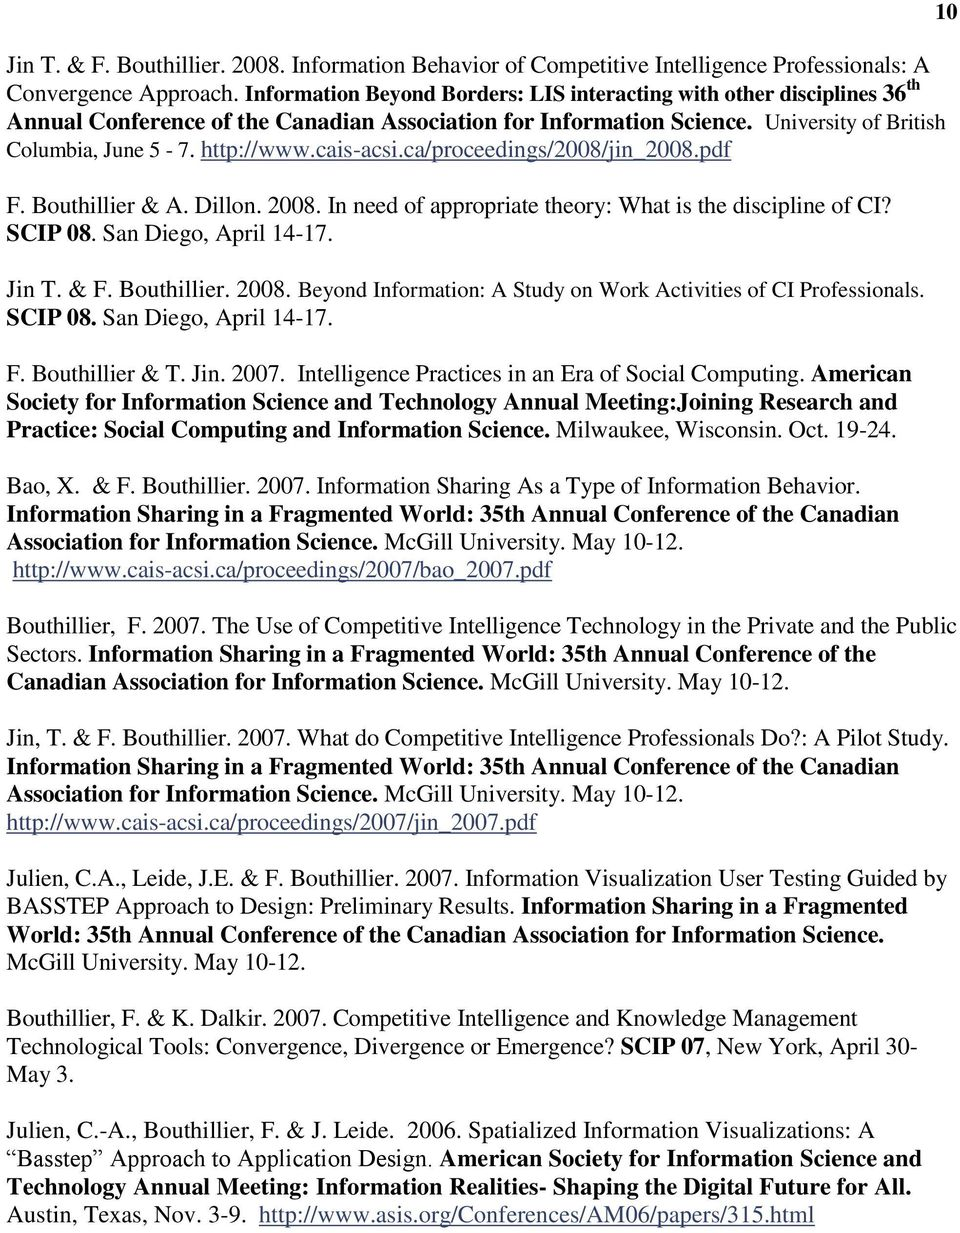 cais-acsi.ca/proceedings/2008/jin_2008.pdf F. Bouthillier & A. Dillon. 2008. In need of appropriate theory: What is the discipline of CI? SCIP 08. San Diego, April 14-17. Jin T. & F. Bouthillier. 2008. Beyond Information: A Study on Work Activities of CI Professionals.